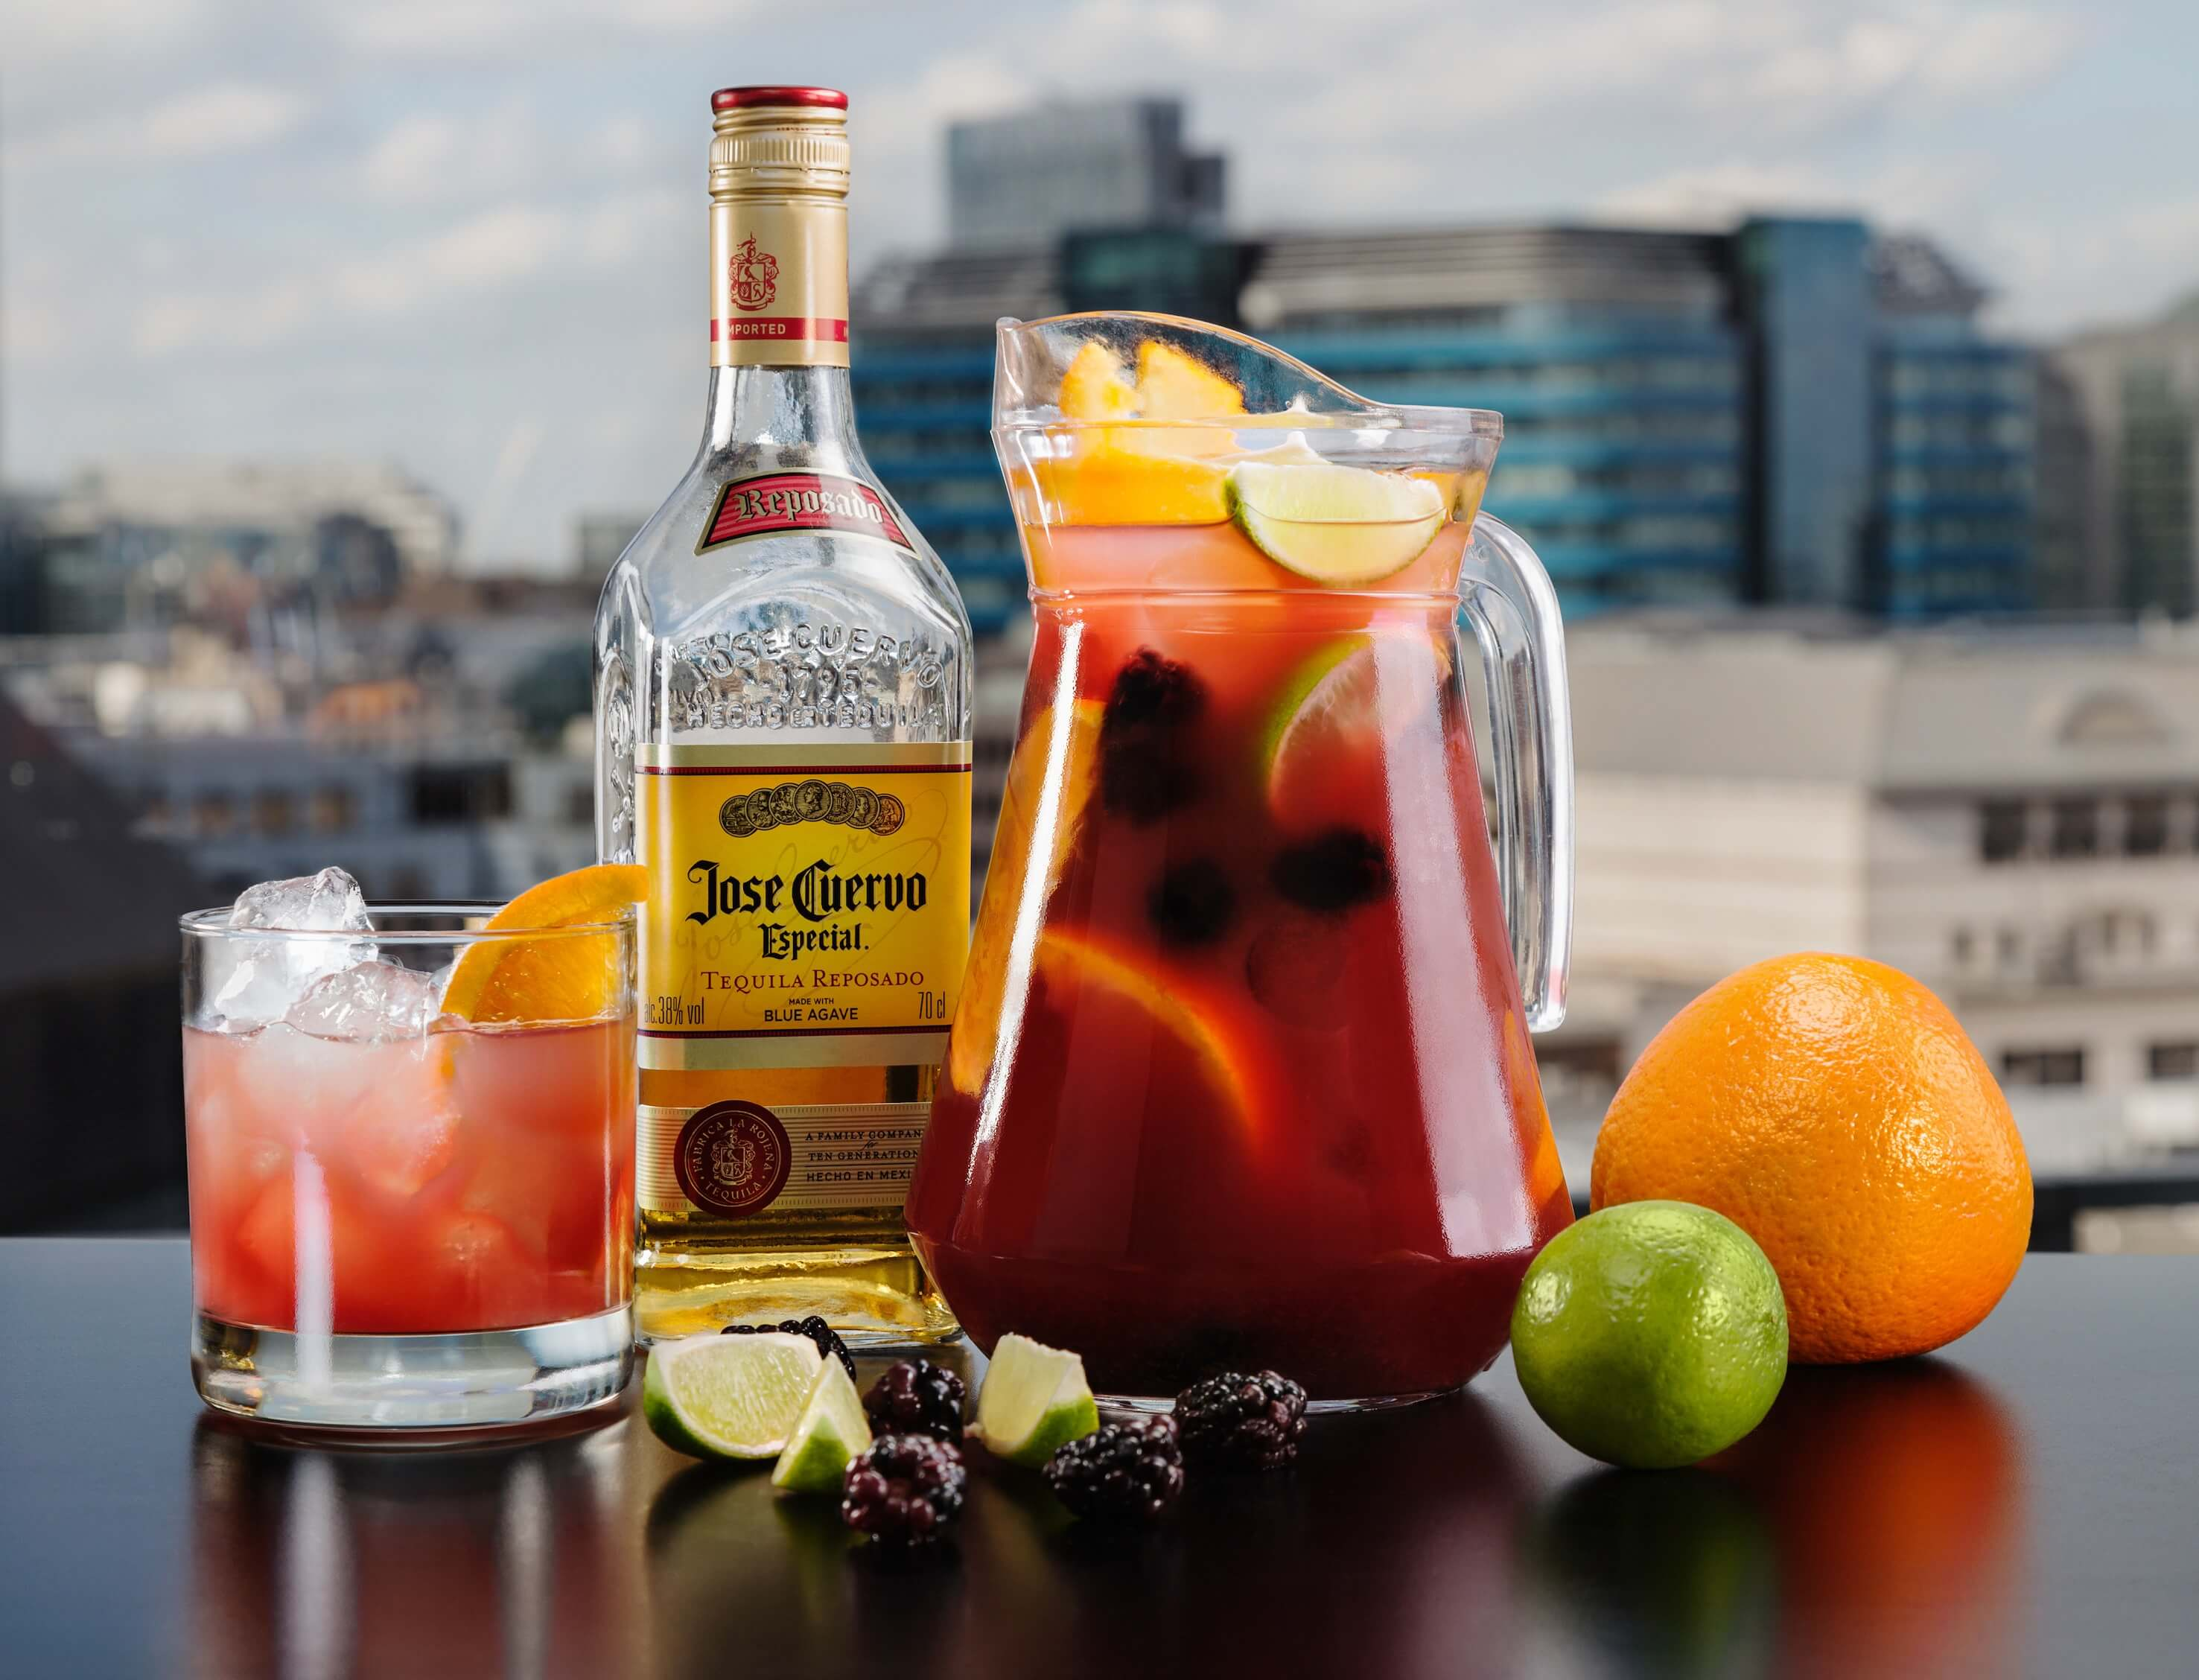 Cuervo's Cantina at Skylounge, skylounge, hilton, doubletree, tower hill, city, canary wharf, new bar, mexican, pop-up, new, margarita, frozen margarita, mexican mule, cocktails, spirits, fun, young, exciting, views, london, bars, drinks, drinking, alcohol, top 5, unusual, quirky, london, booze, food, small plates, pitchers, sangria